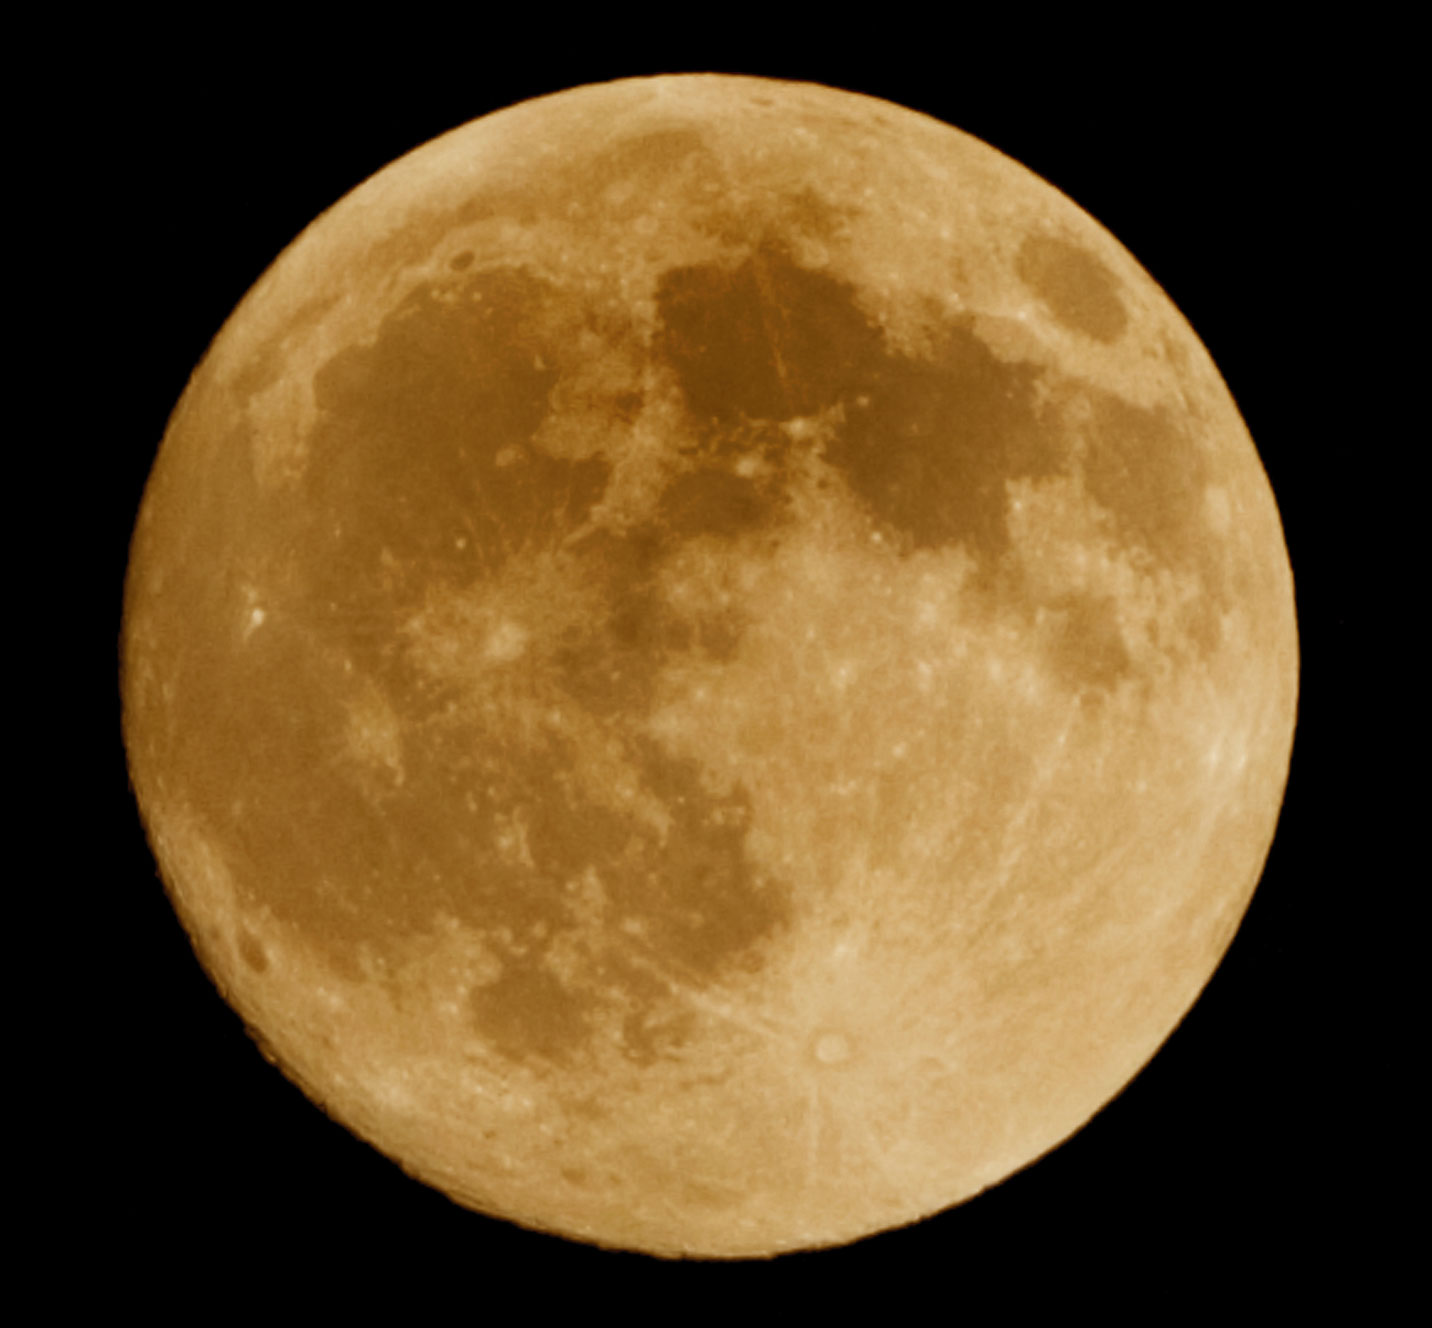 The supermoon makes a close-in appearance